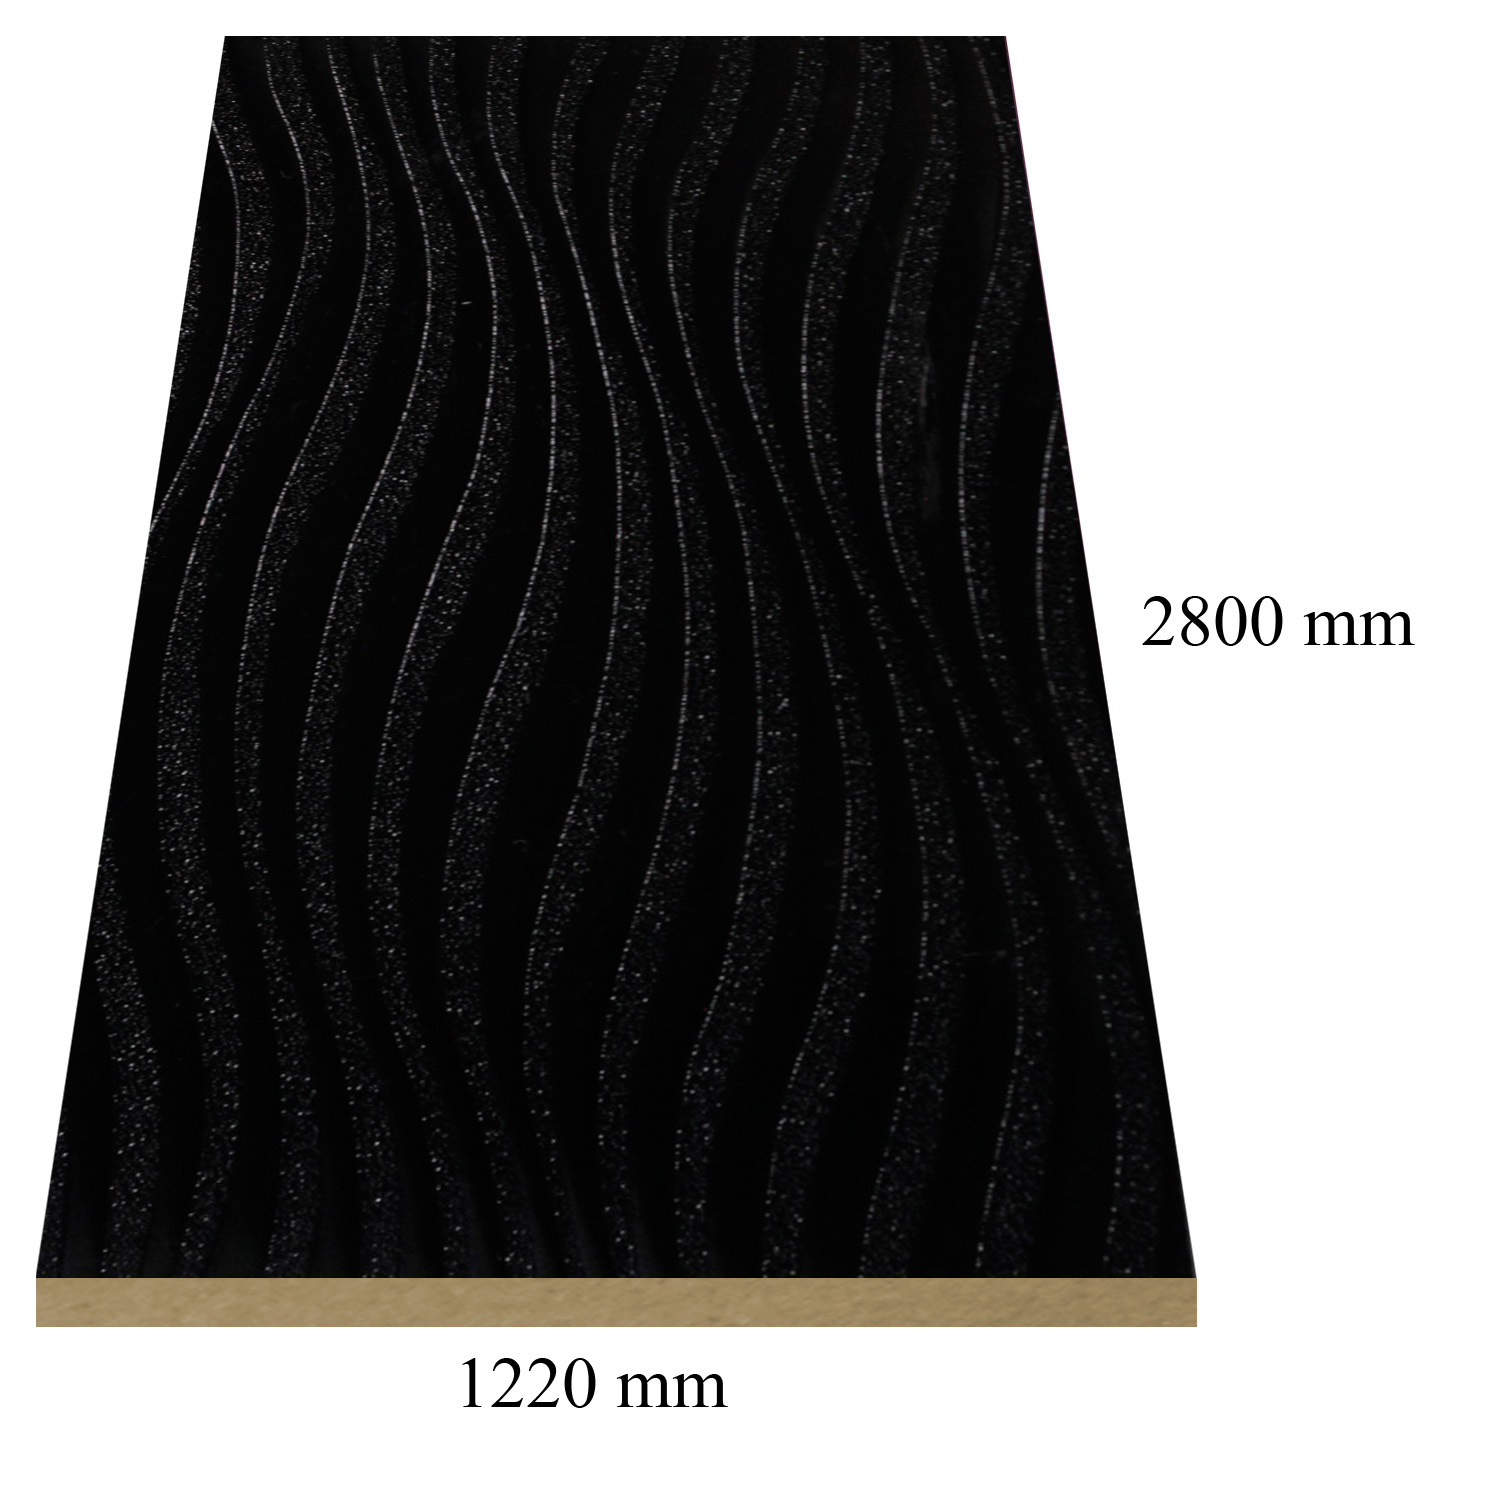 487 Sonic black glossy - PVC coated 18 mm MDF